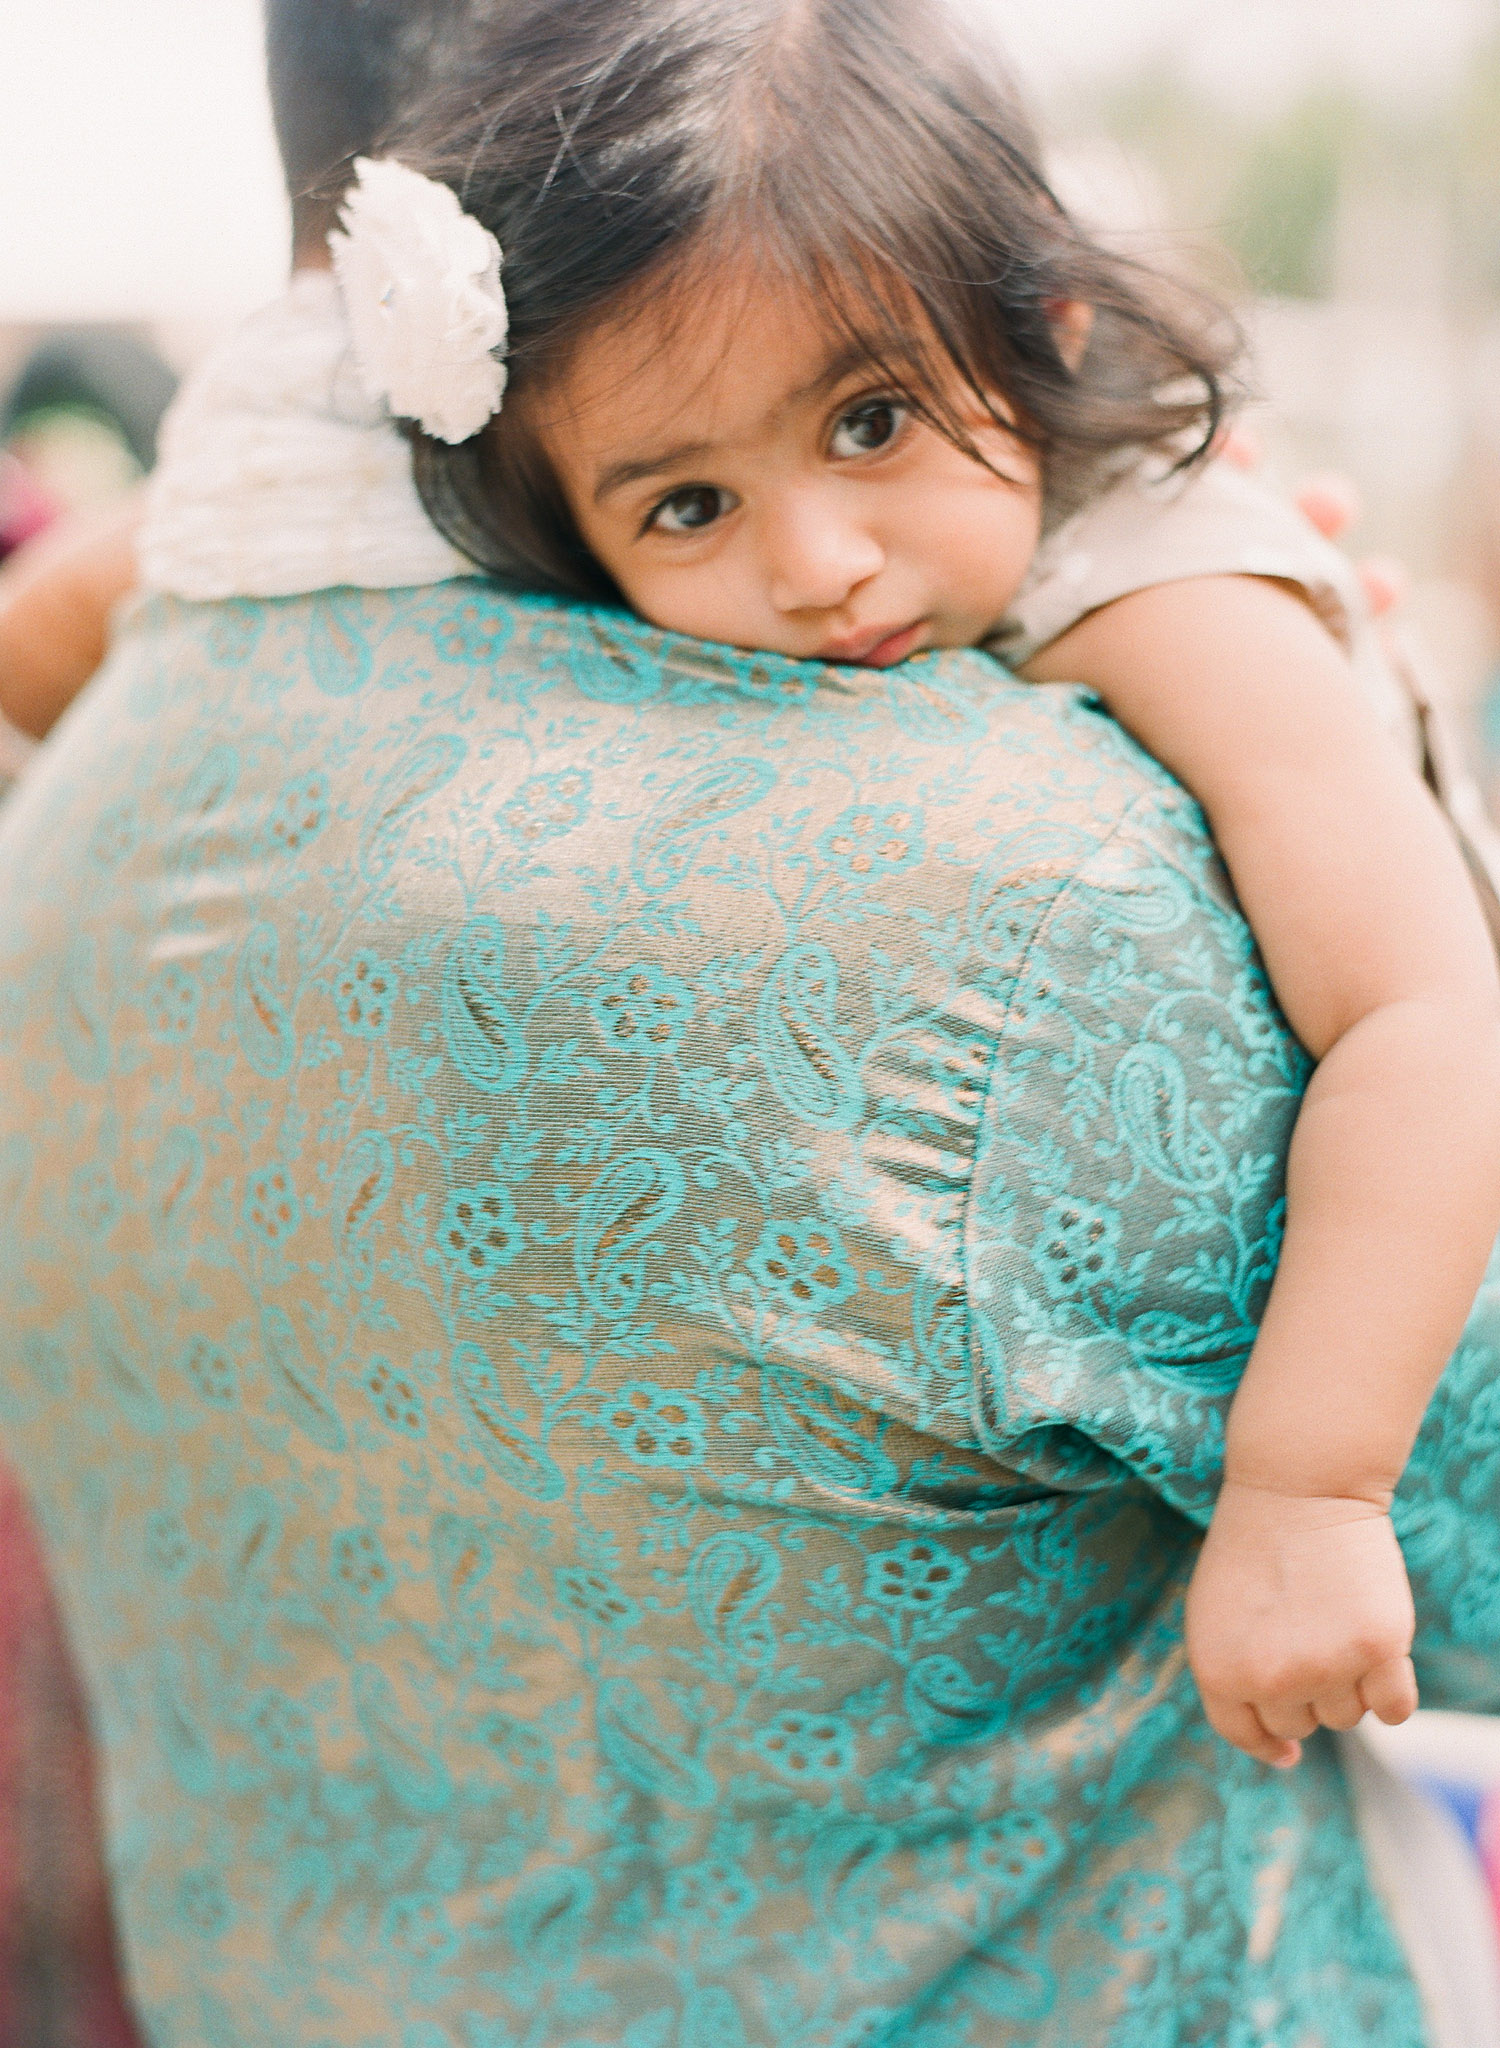 a little girl holds on to her daddy during this parade at the Indian Wedding in Florida photographed by Destination Wedding Photographer, LExia Frank - a top indian wedding photographer - who shoots film for luxury indian weddings preferring the soft skin tones and vibrant colors for indian weddings in india and worldwide